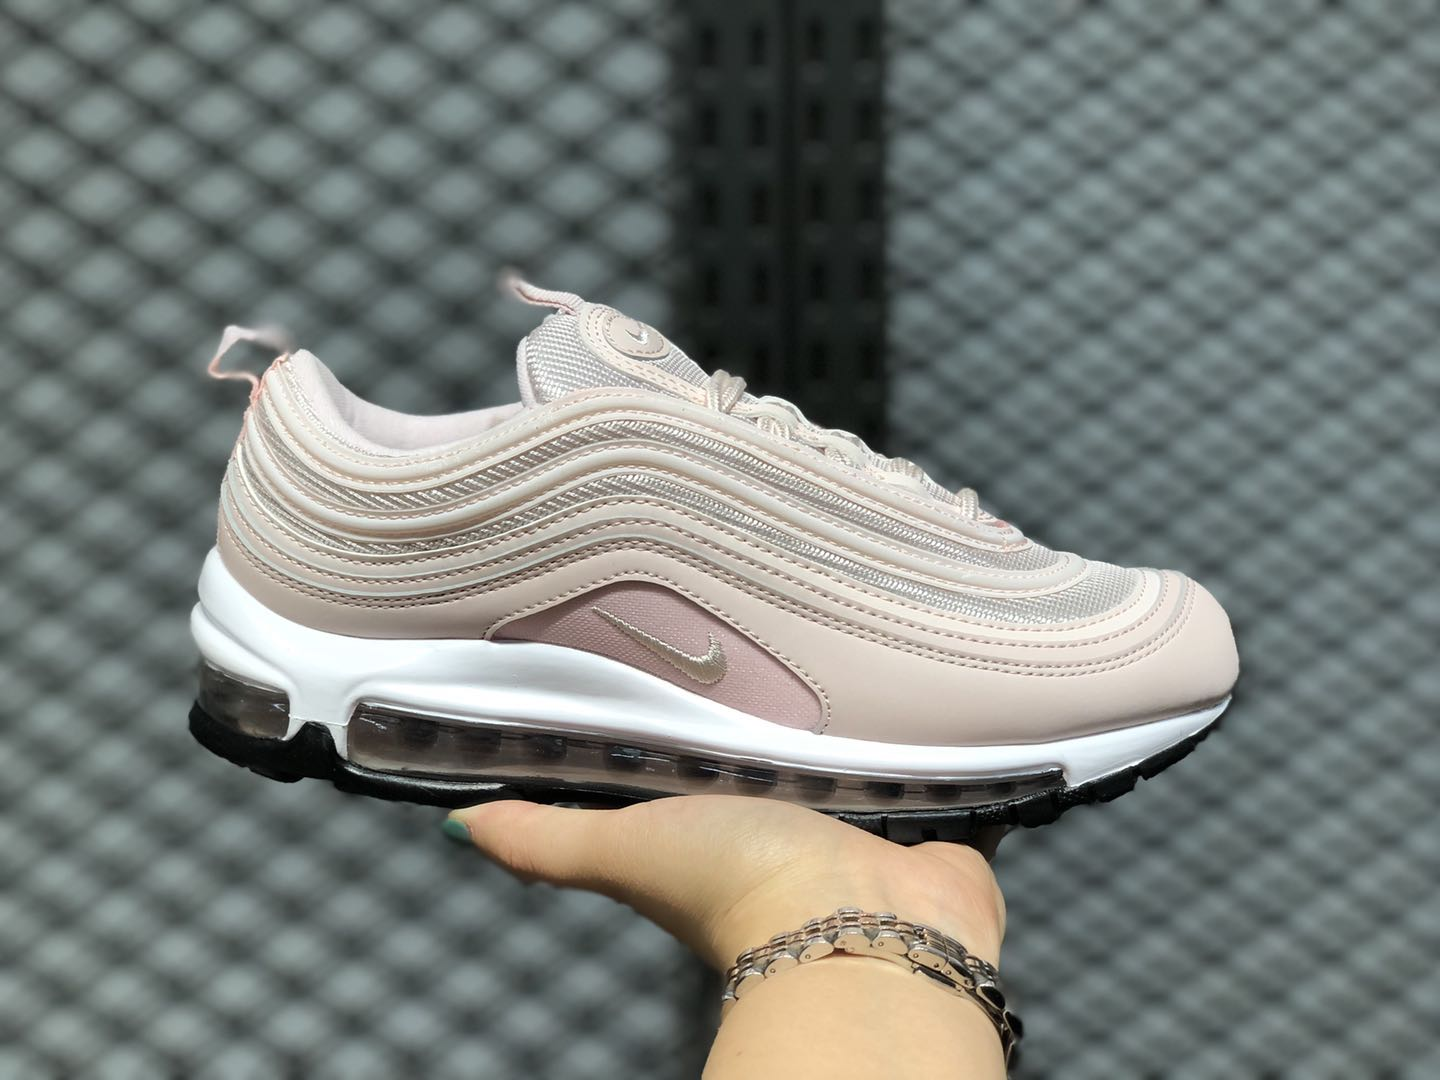 Nike Wmns Air Max 97 Barely Rose/White-Black 921733-600